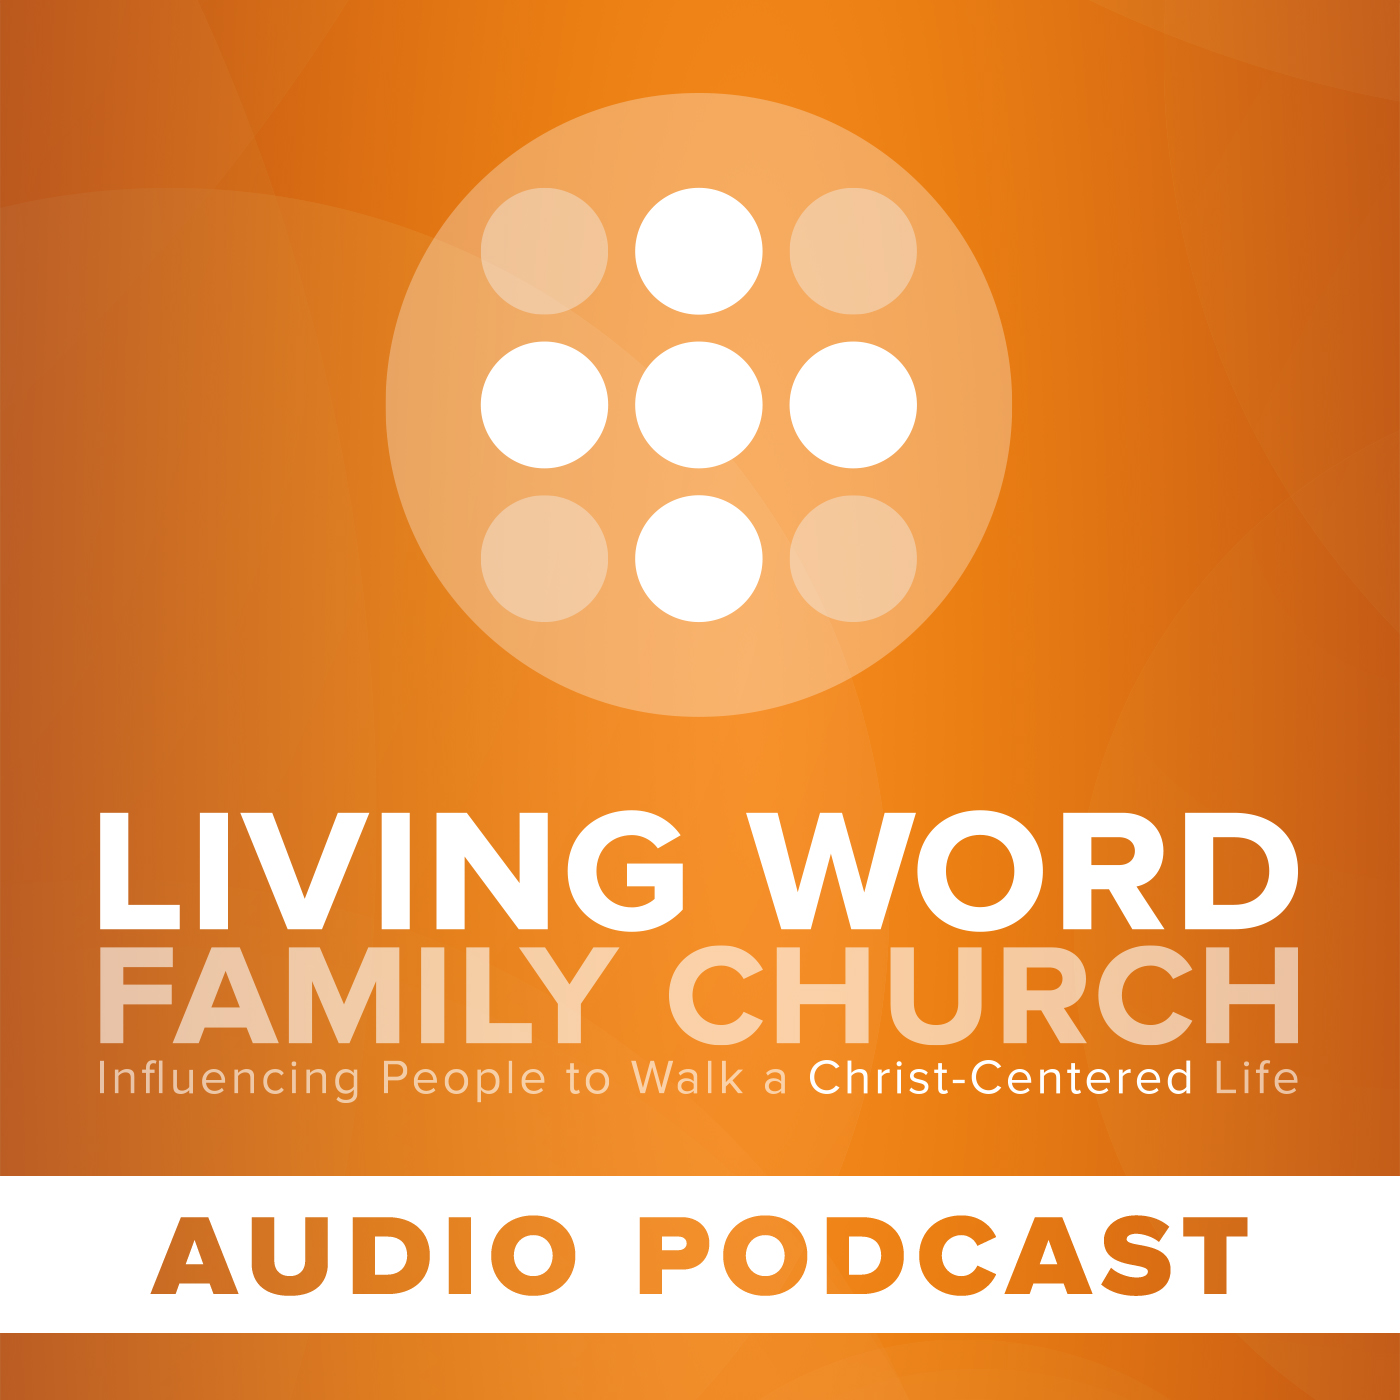 Living Word Family Church Podcast